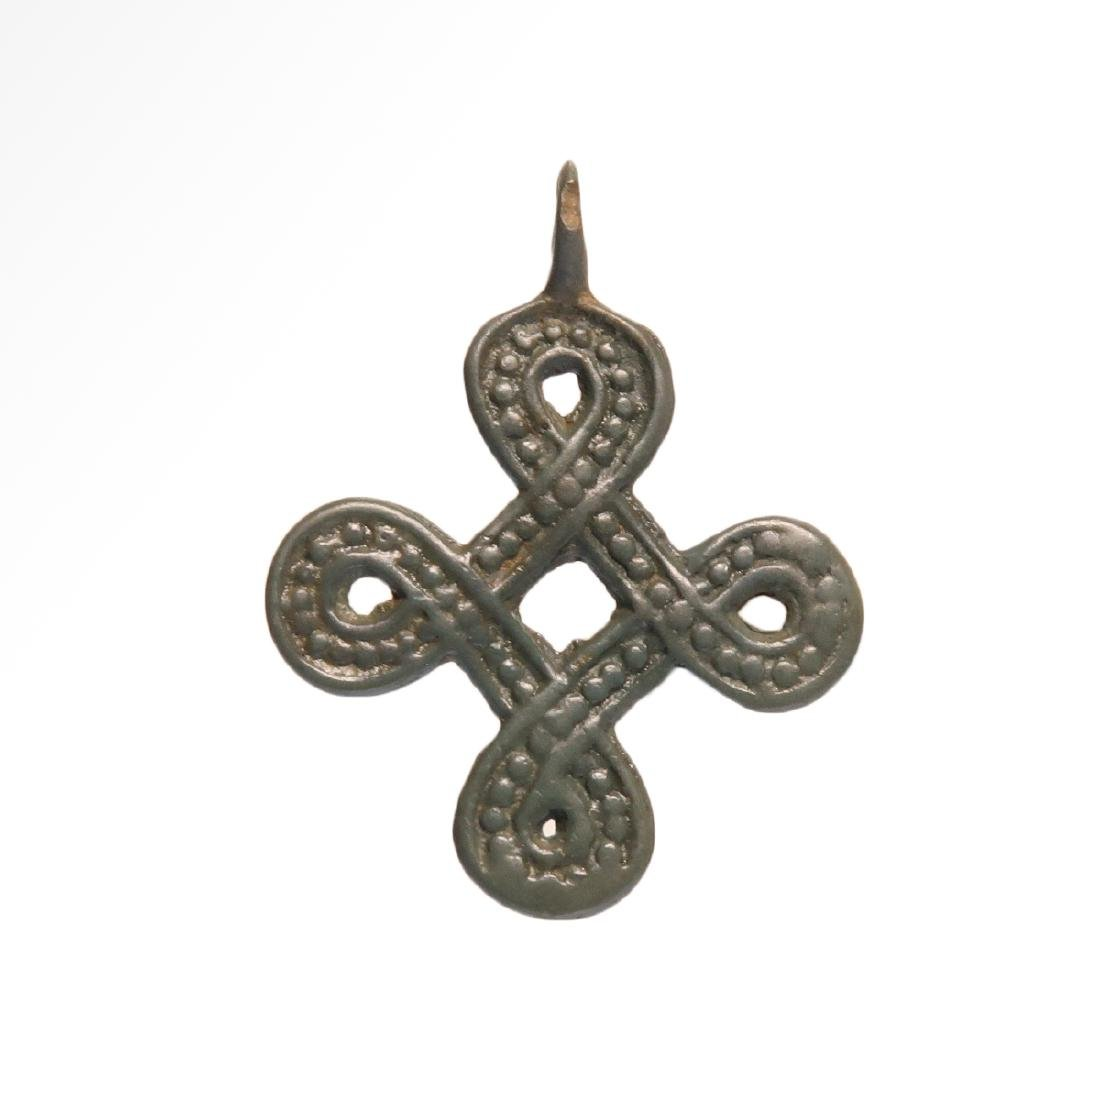 Viking Interlace Cross Pendant, 9th-11th century AD. - 2